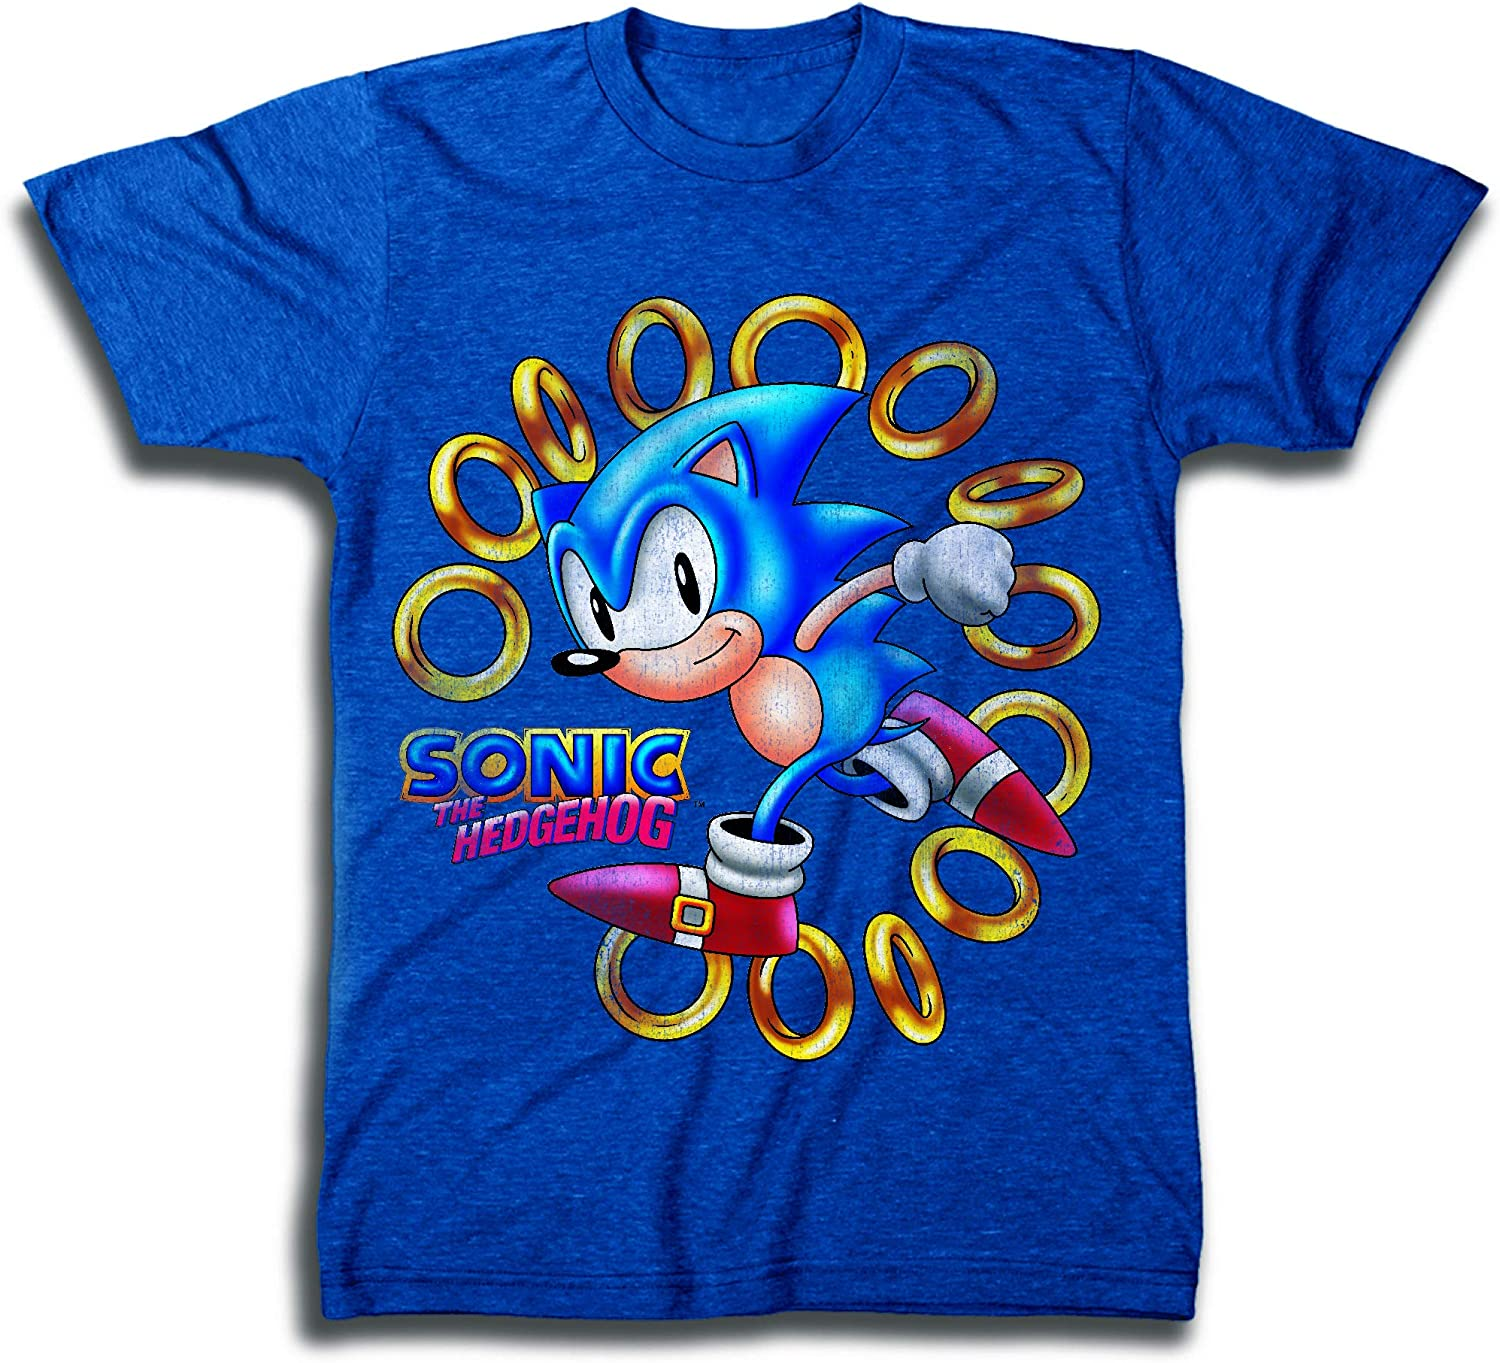 Amazon Com Sega Official Sonic The Hedgehog Shirt The Fastest Thing Alive The Blur Blur Official T Shirt Clothing